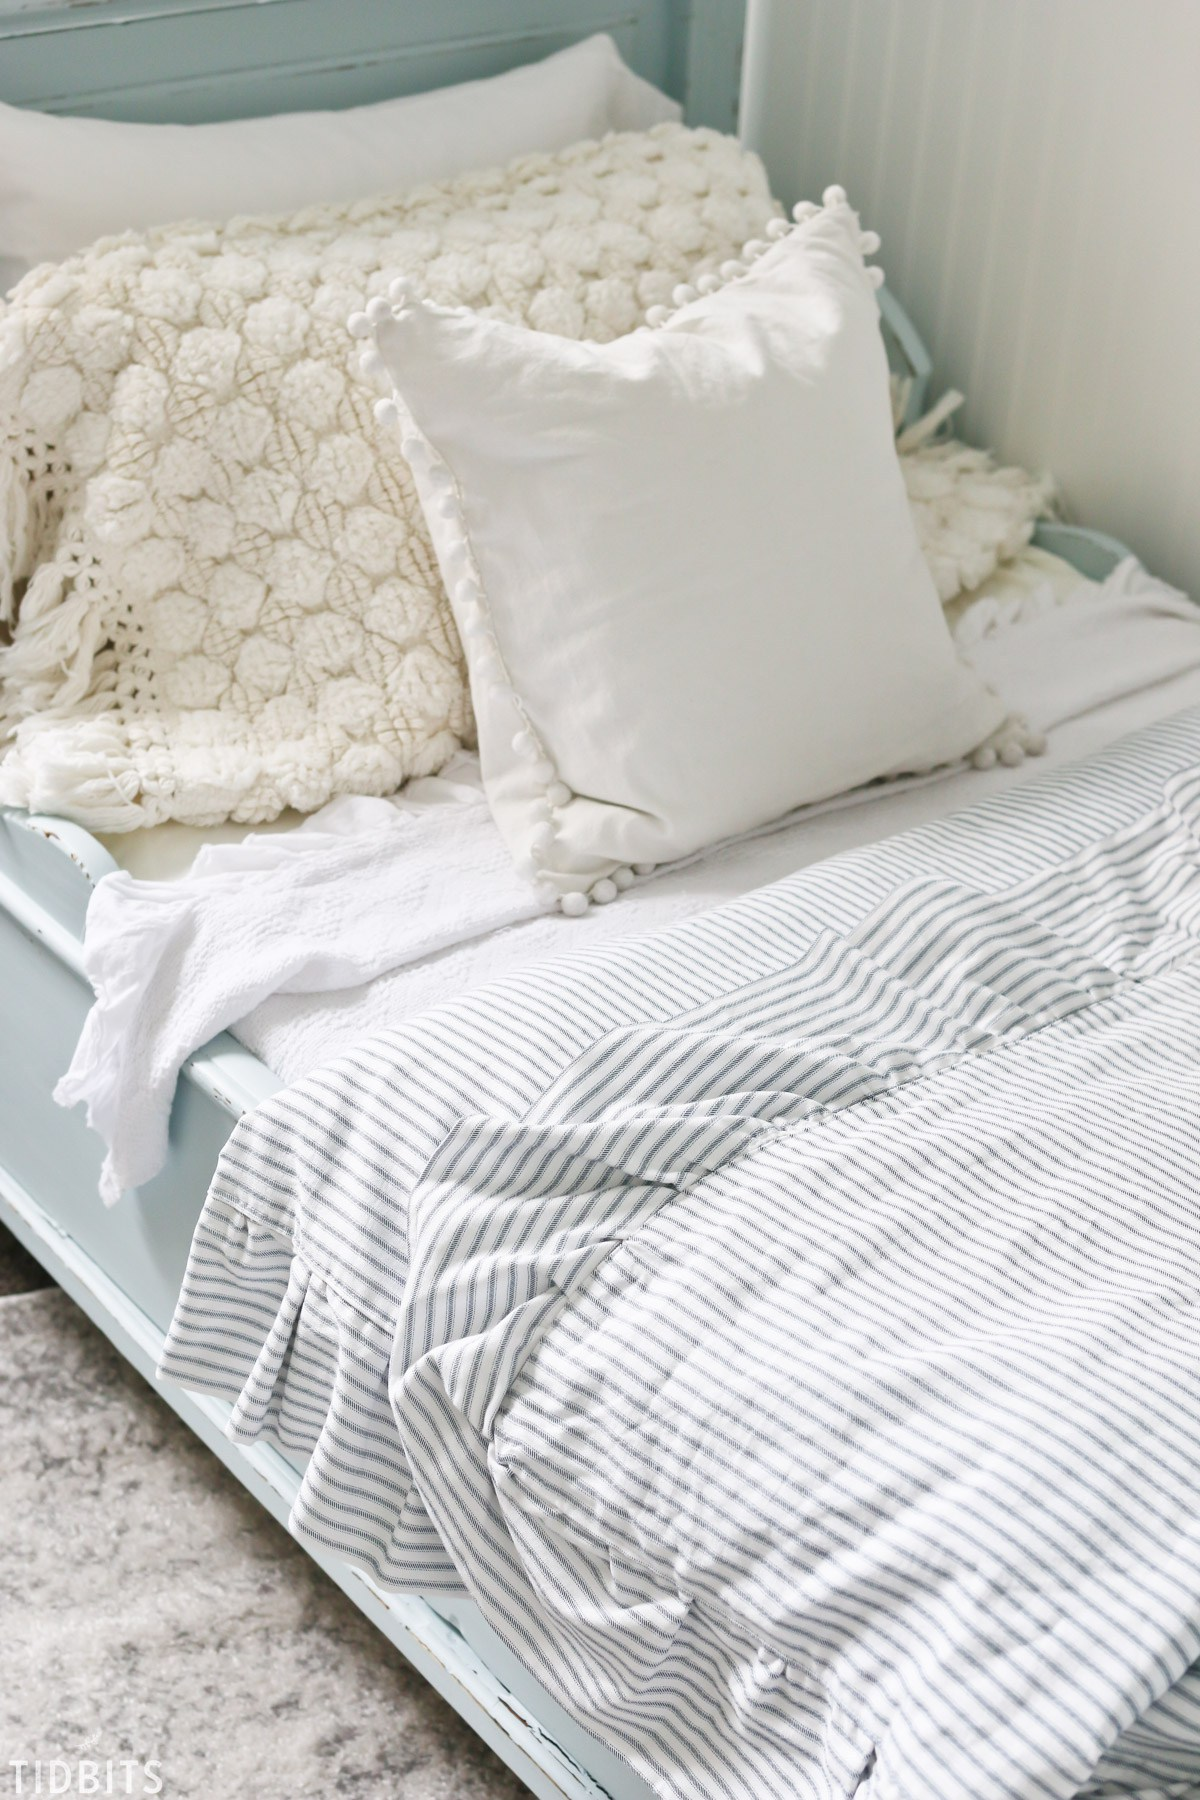 So many textures in this bed spread - I love the knitted blanket and striped comforter